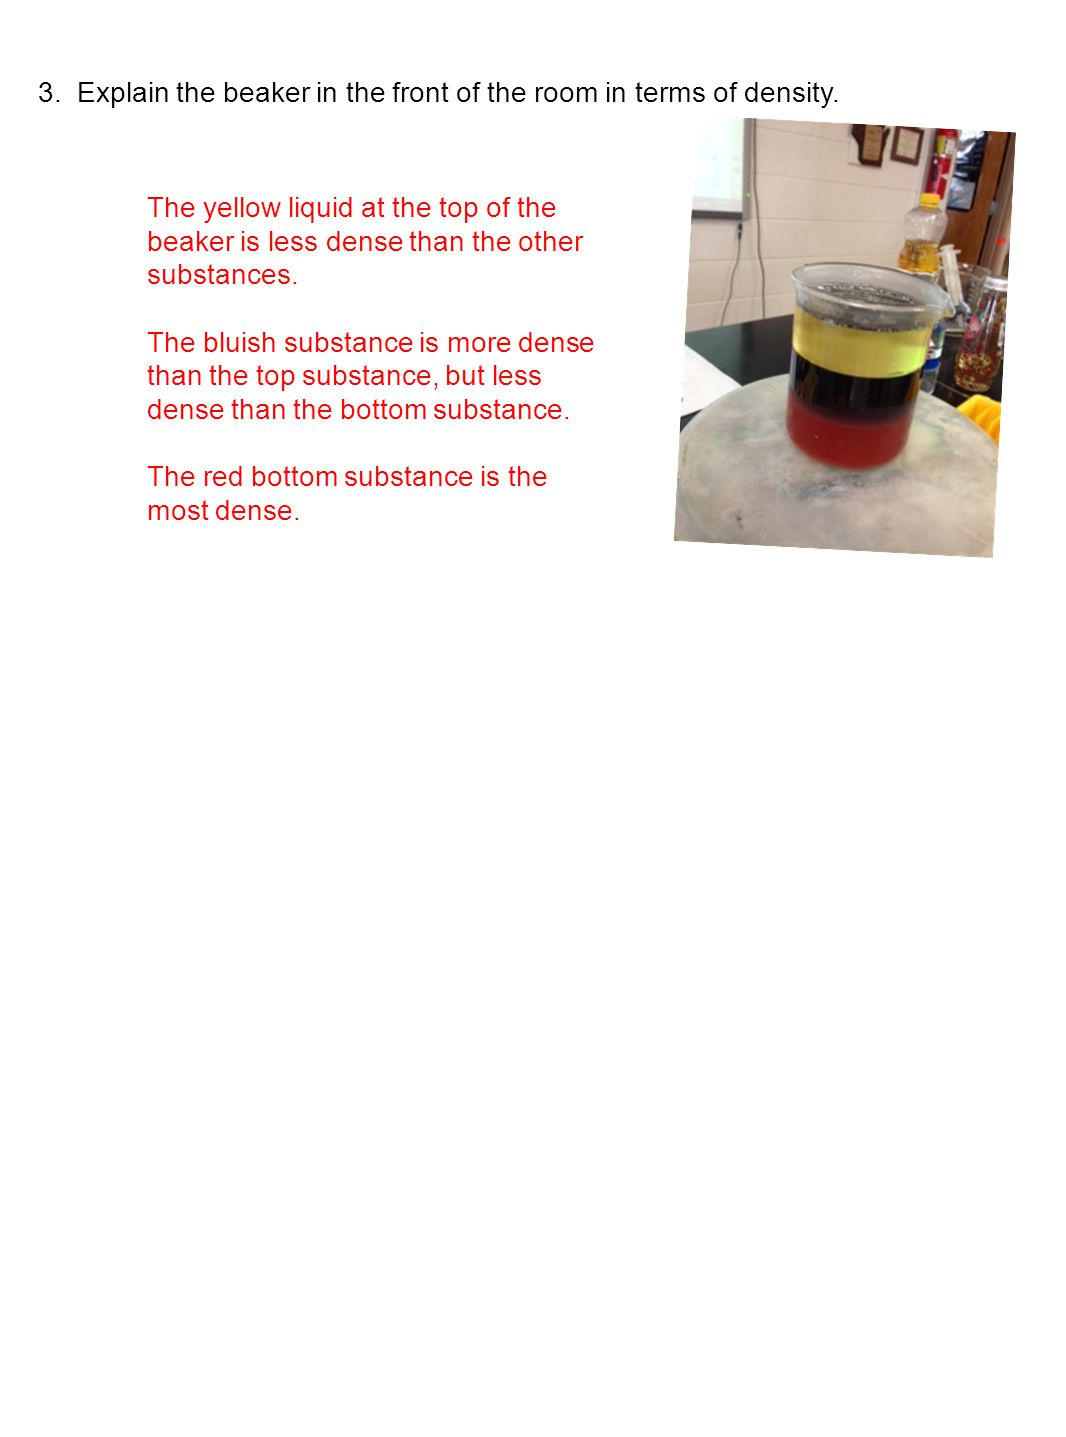 3. Explain the beaker in the front of the room in terms of density.